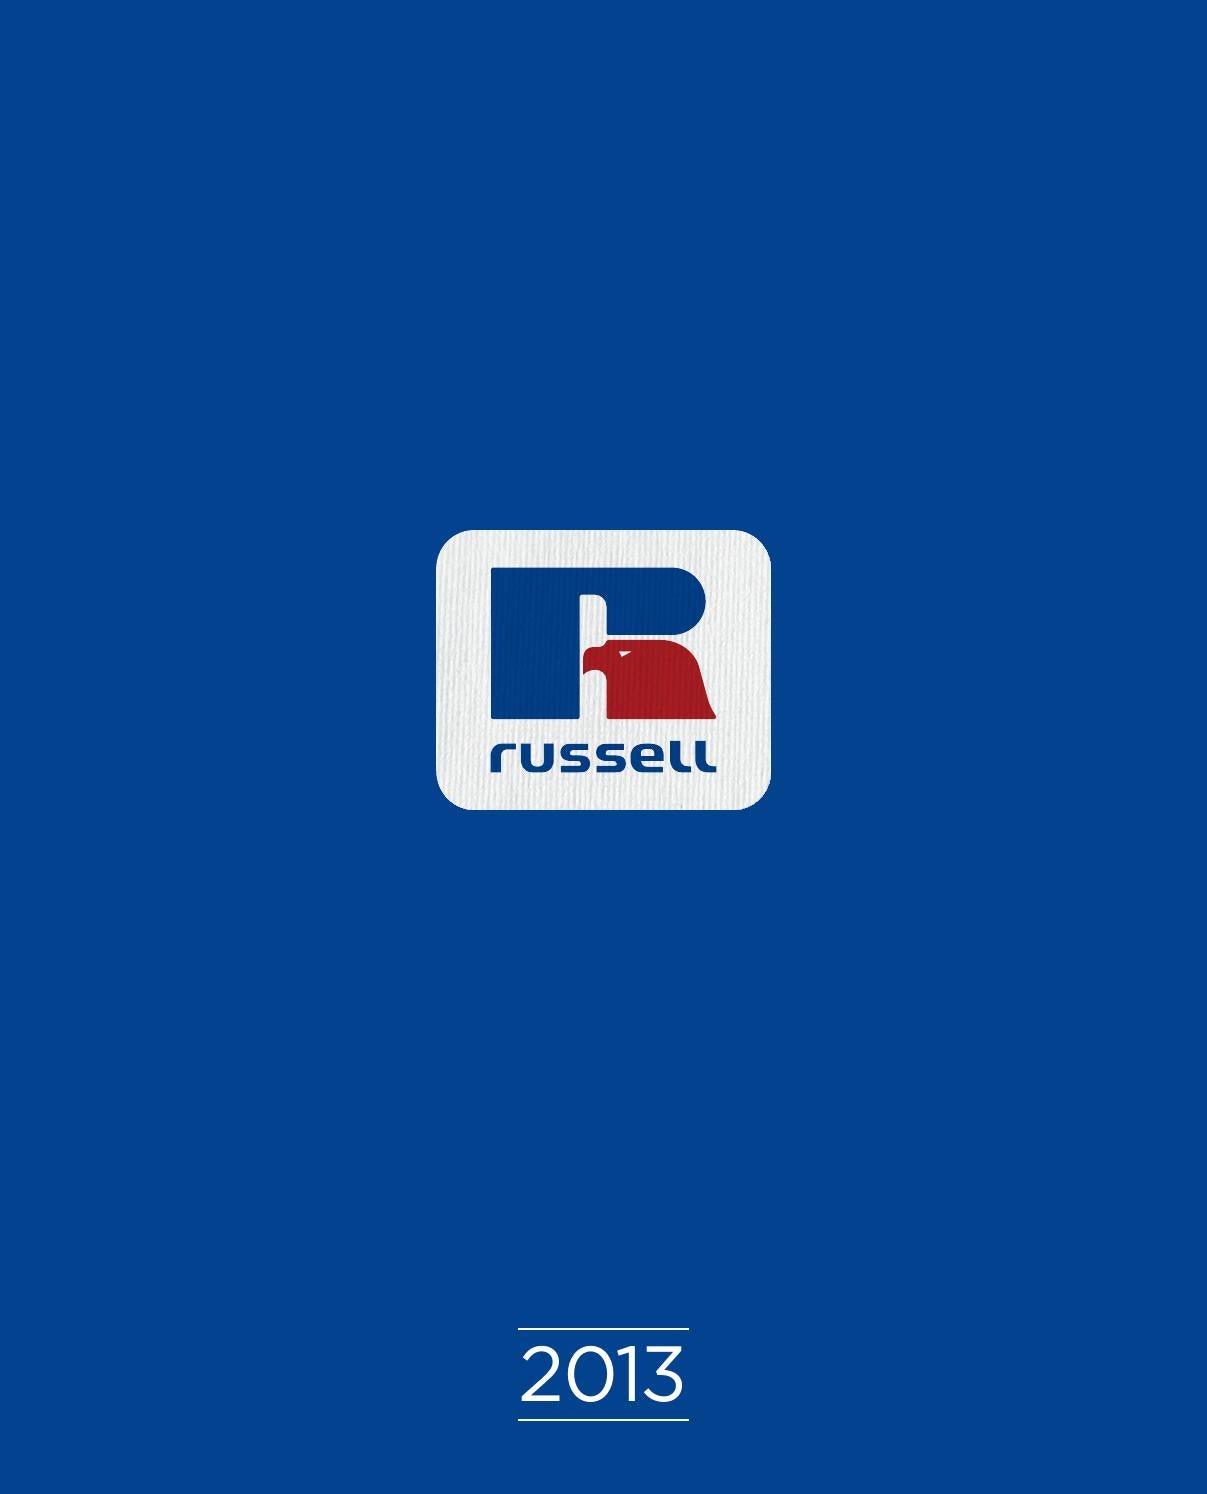 russell europe by K M - issuu e90c3cc79e5